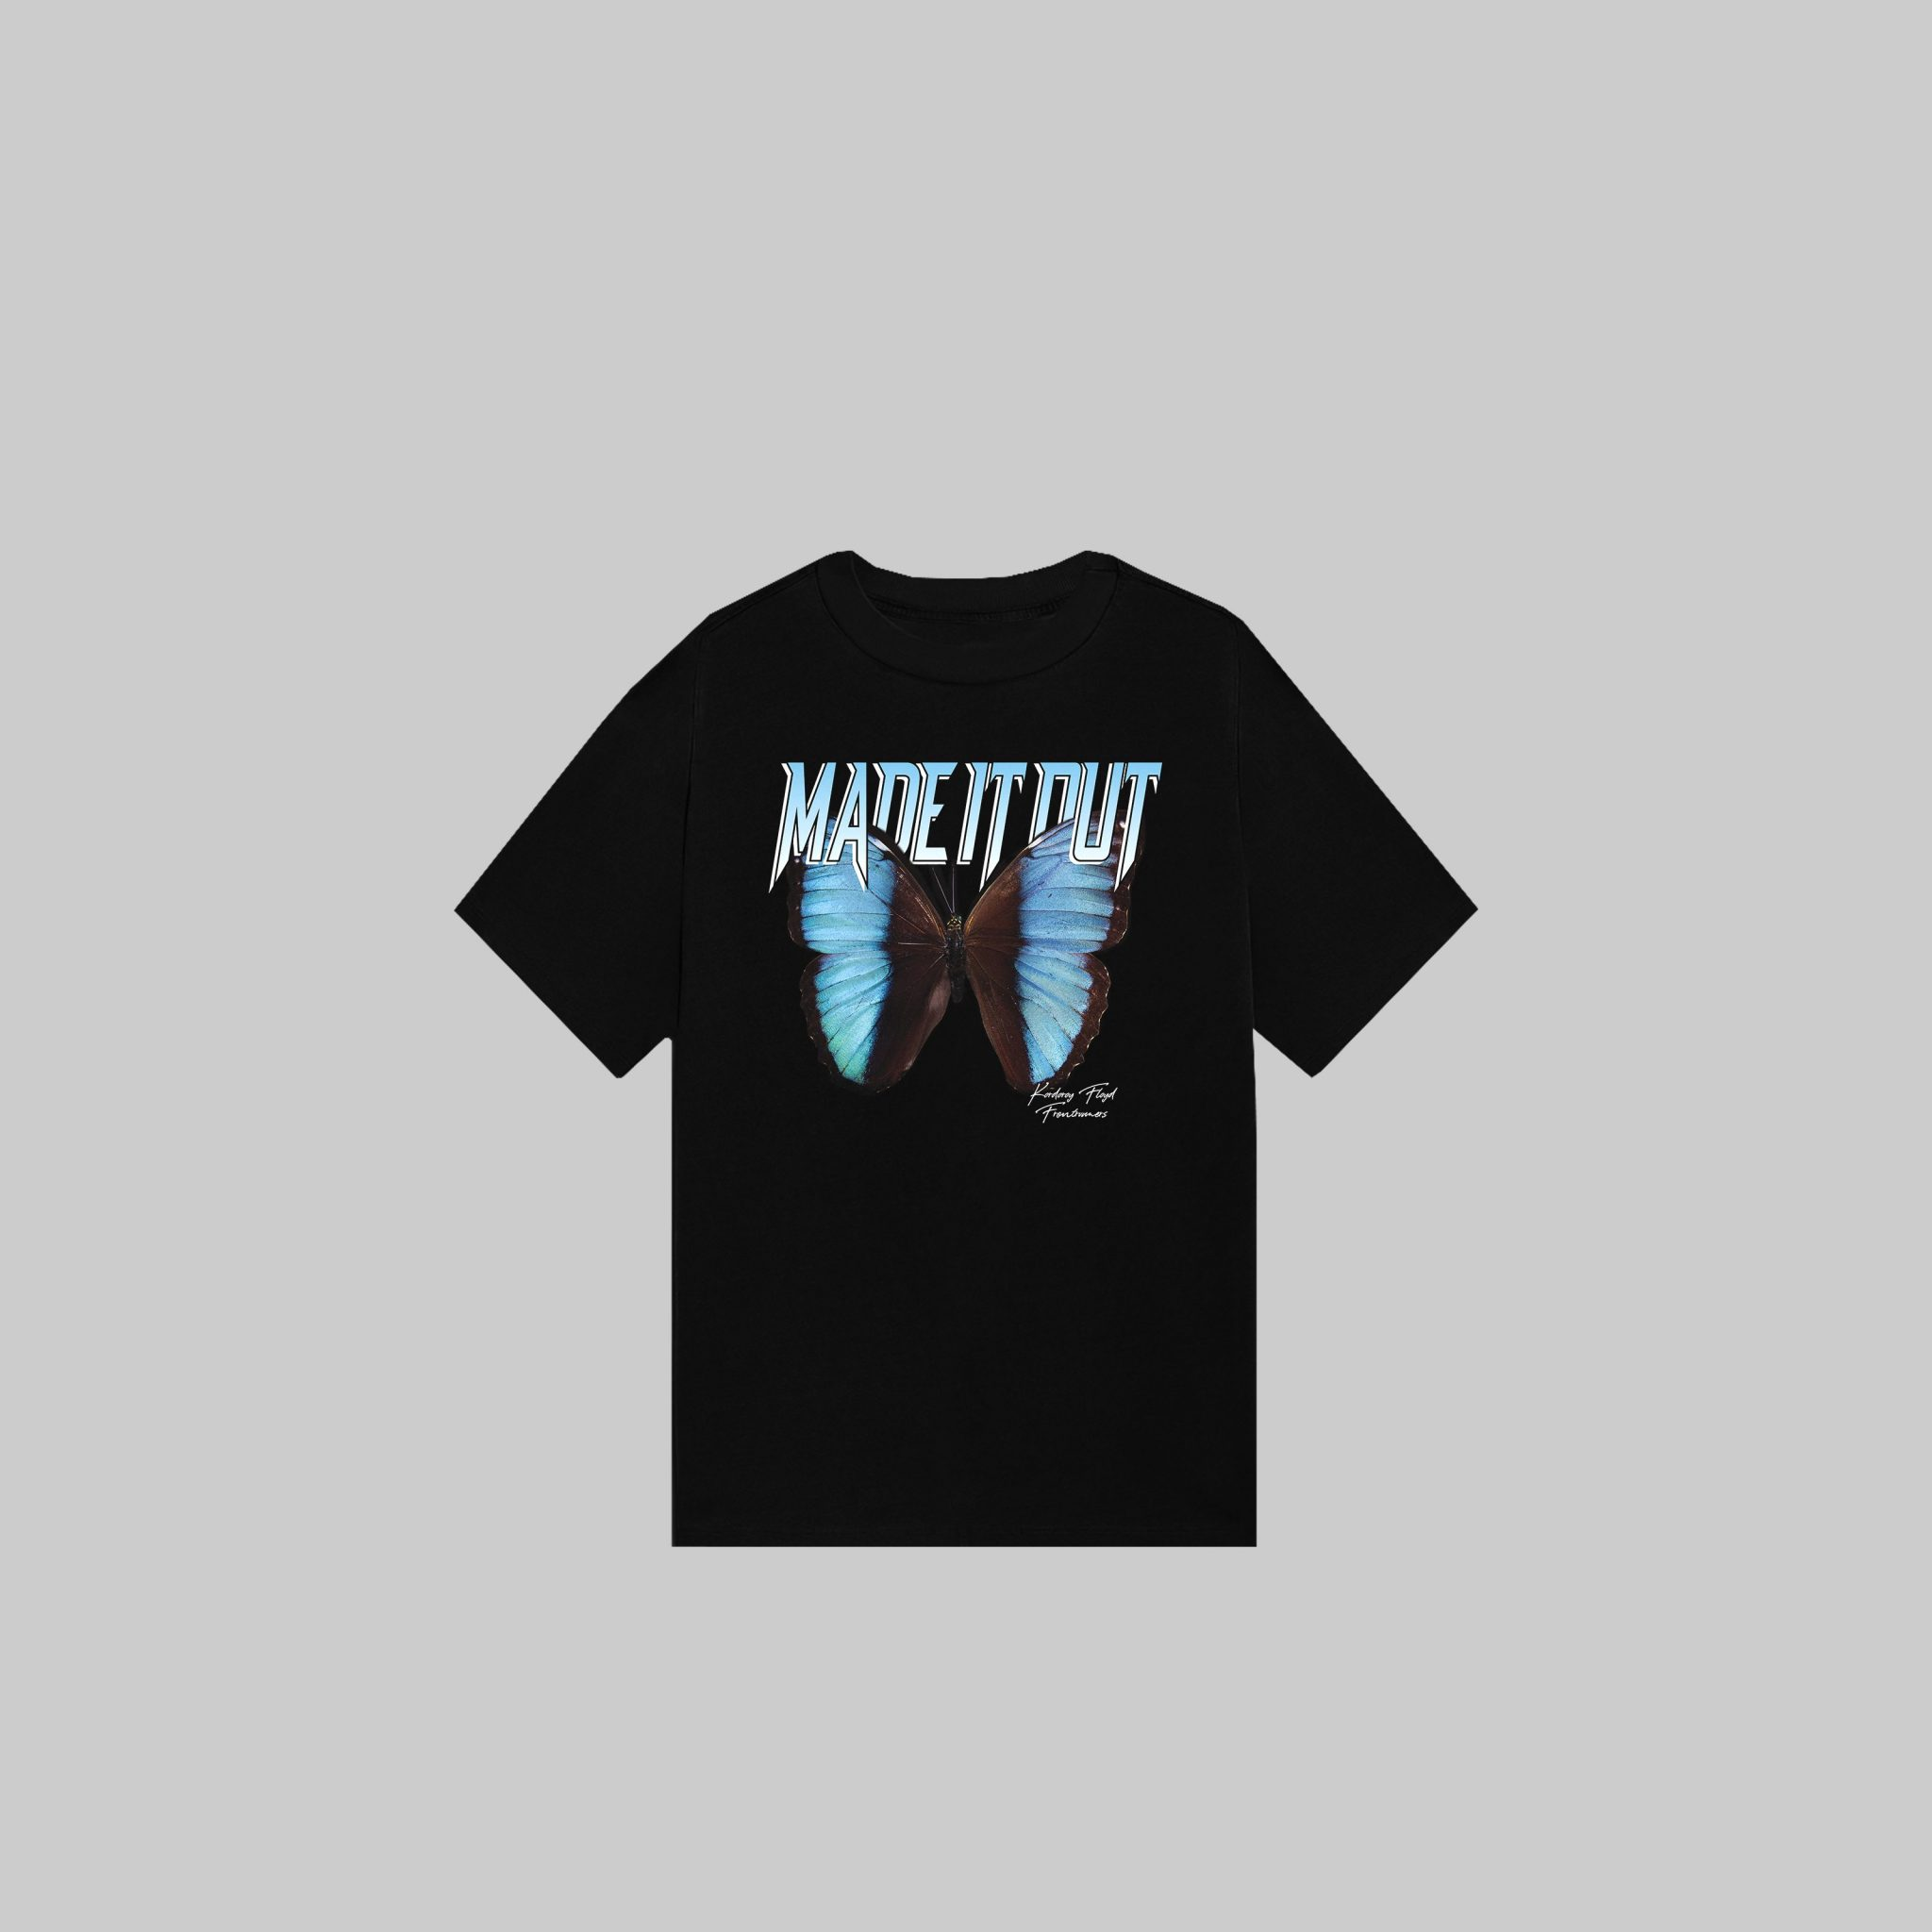 Frontrvnners x Kordoroy Floyd Made It Out Unisex Shirt